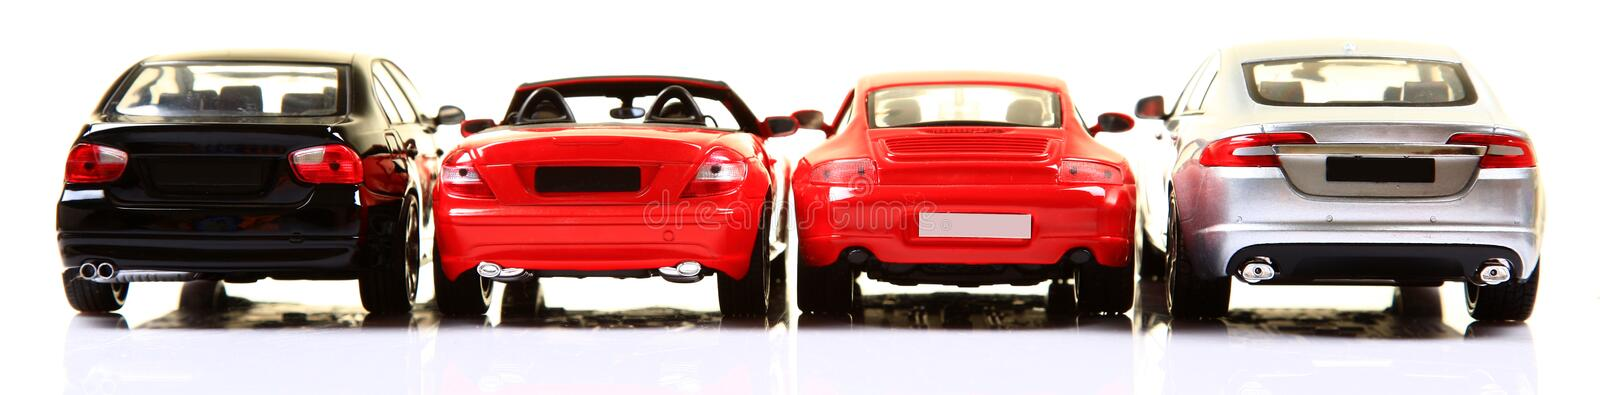 Download Car backs stock photo. Image of expensive, background - 17904634